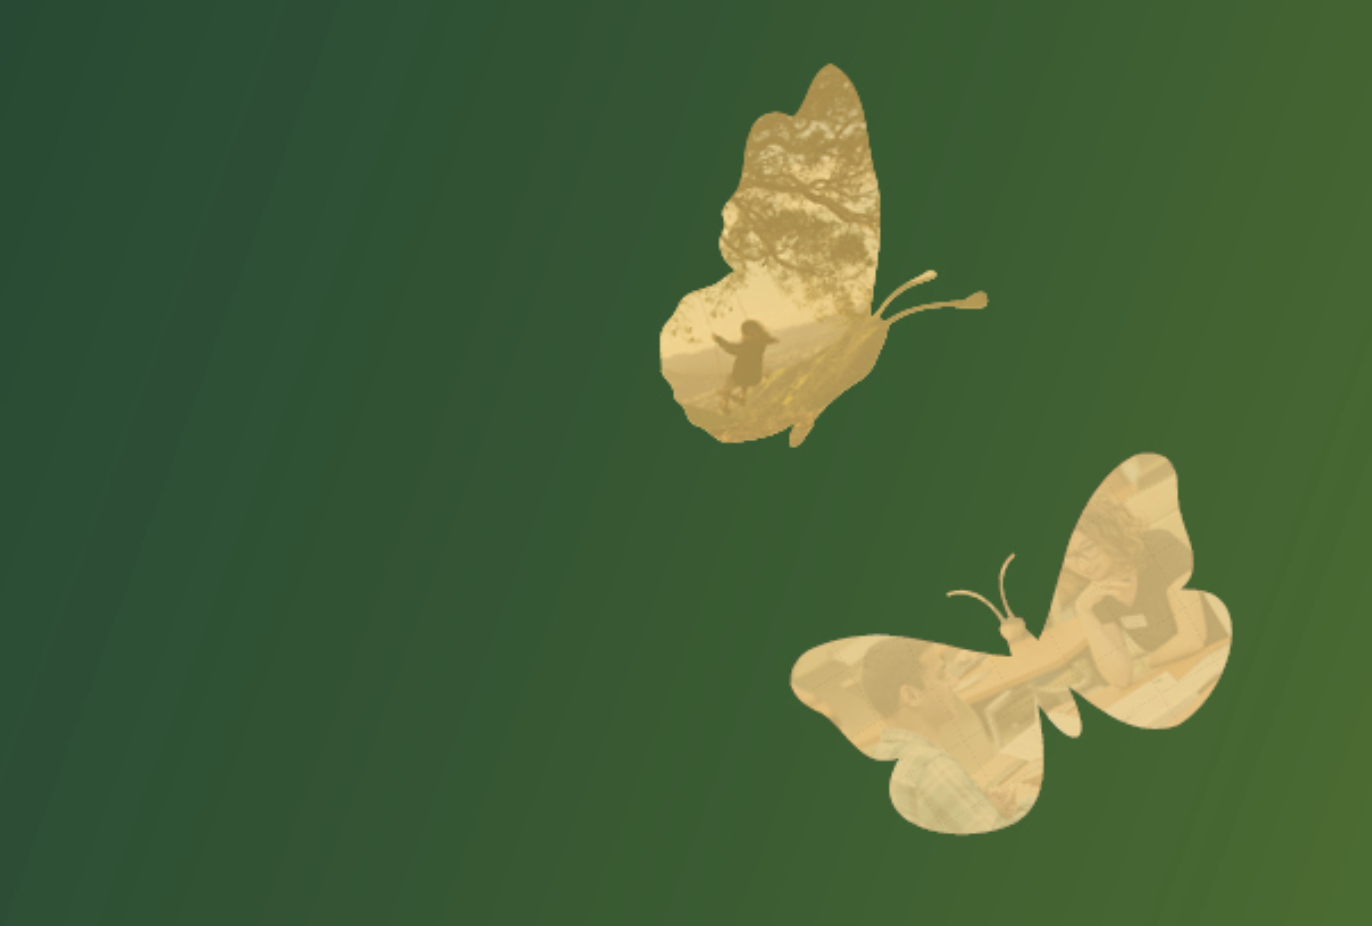 Two gold butterflies on a green background.